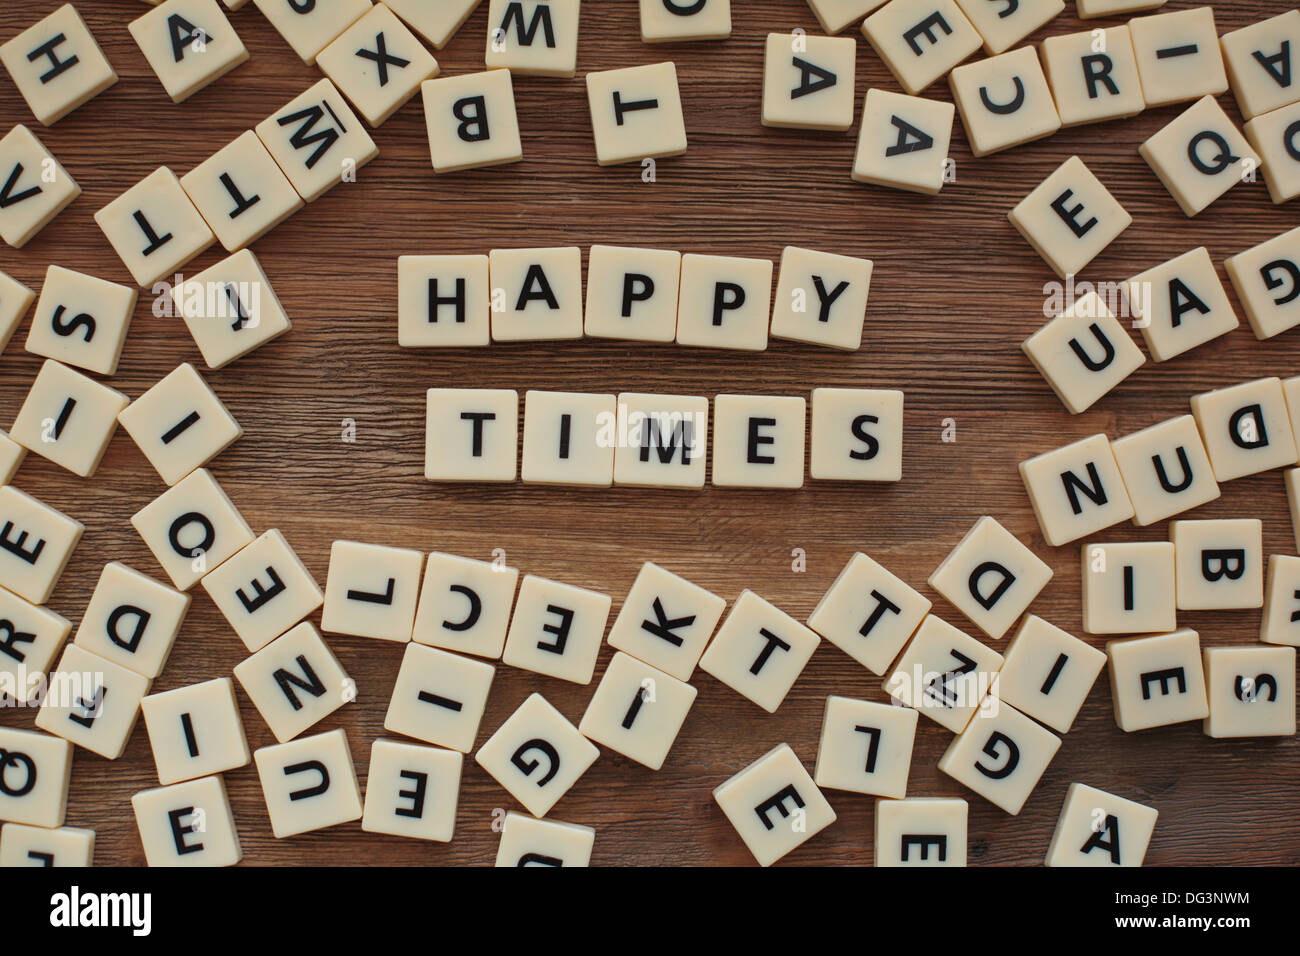 Plastic letters from a childrens' spelling game on a wooden table spell 'happy times' - Stock Image